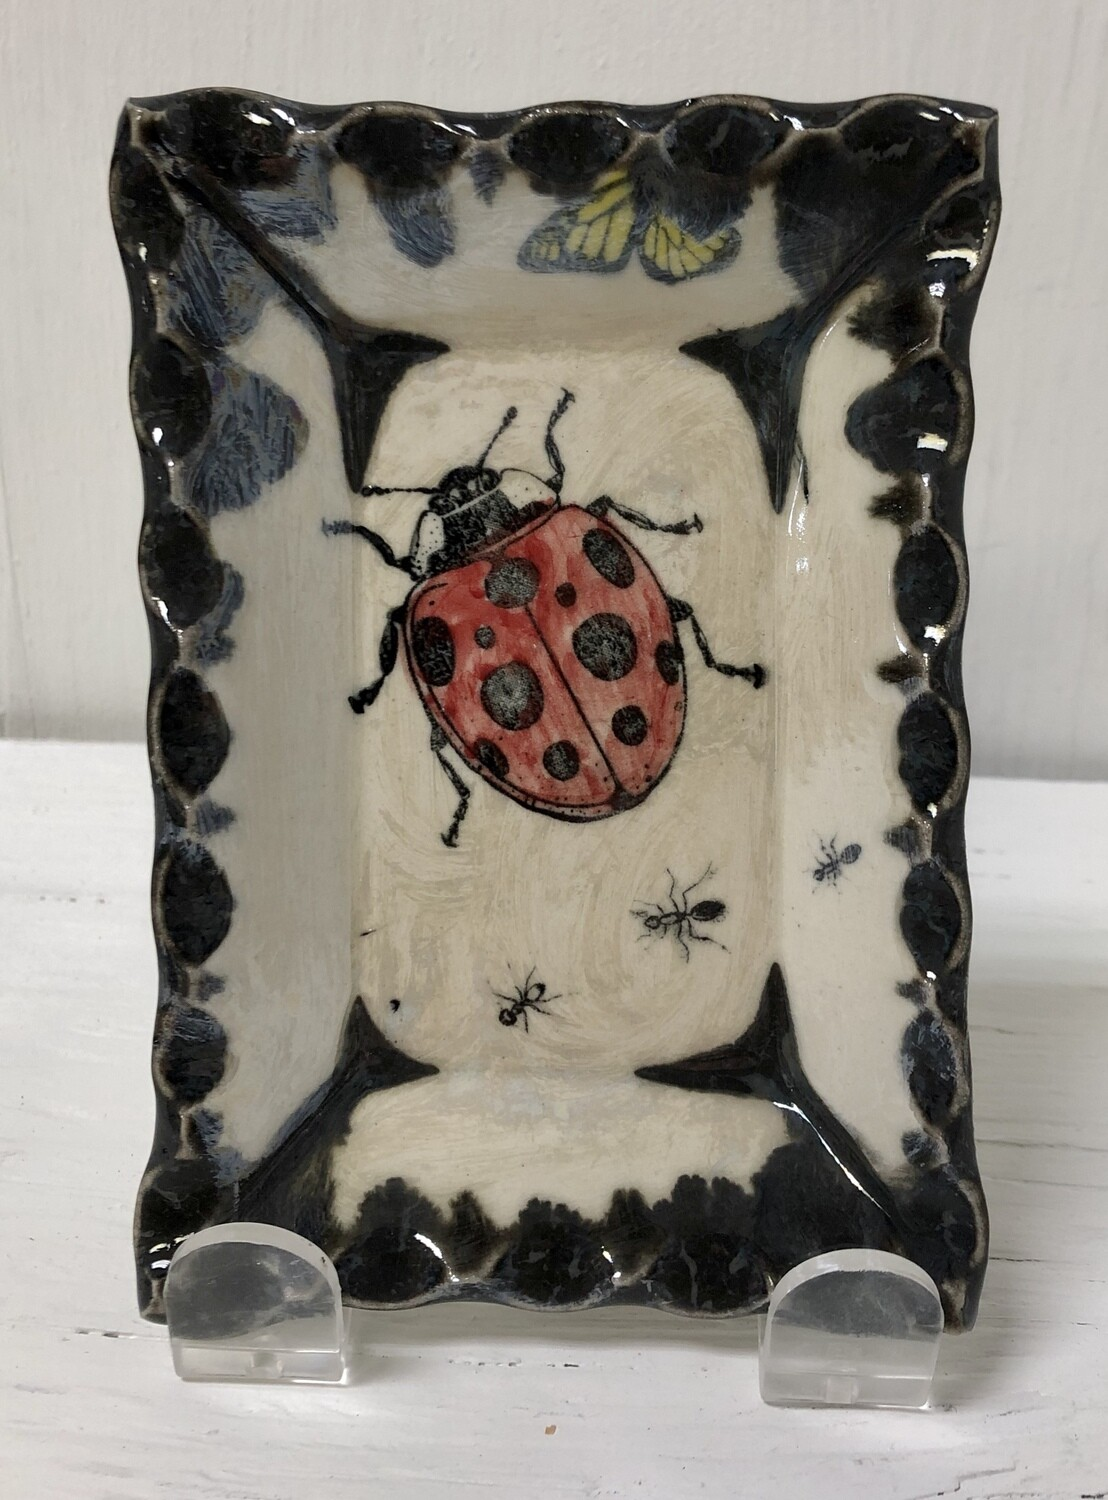 Small Sushi Plate/W Ladybug And Ants